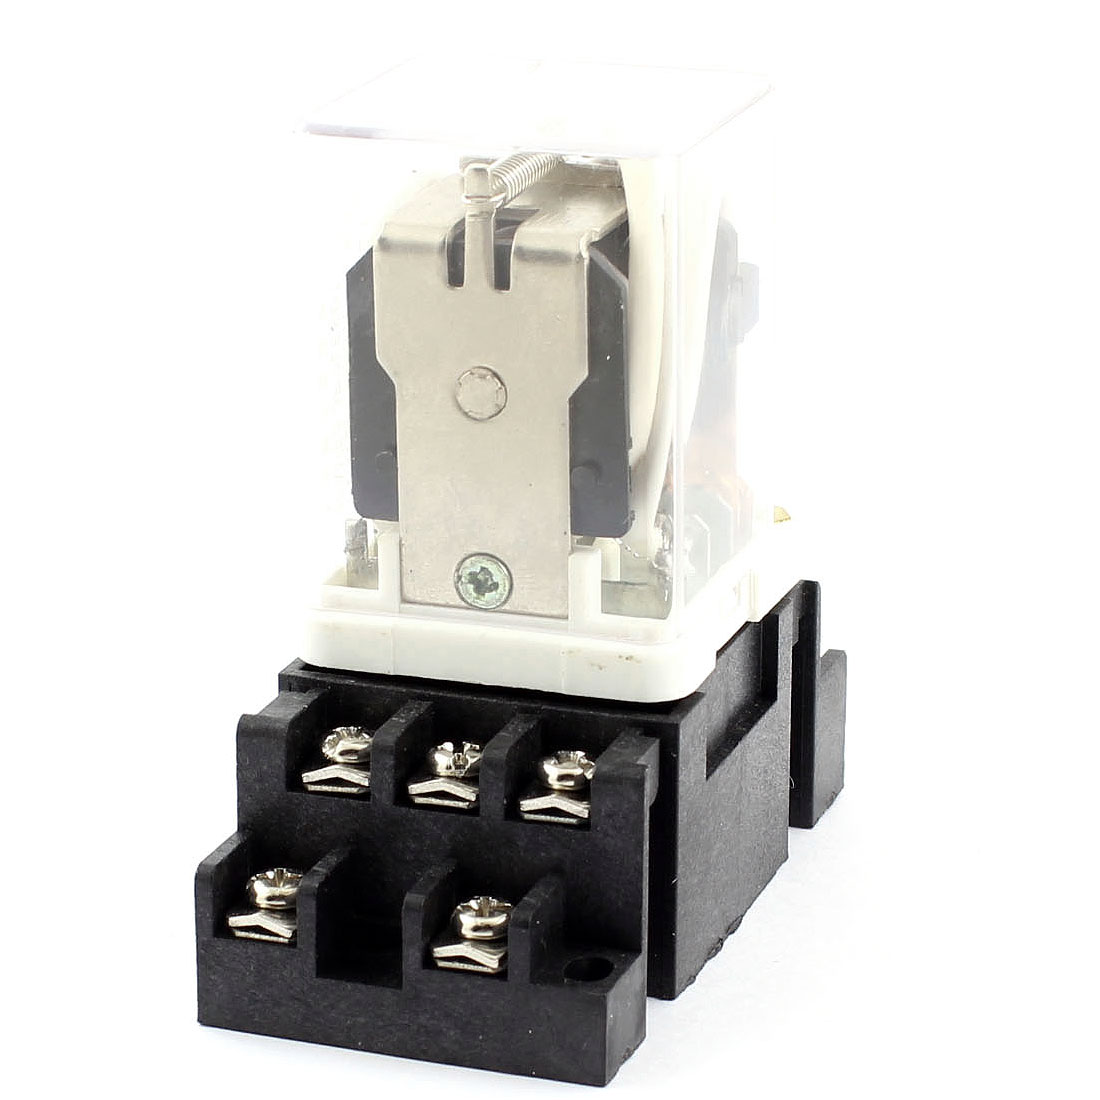 JQX-38F DC 24V 40A Coil Voltage 3PDT 3NO 3NC 11 Terminals 35mm DIN Rail Power Electromagnetic Relay w Socket